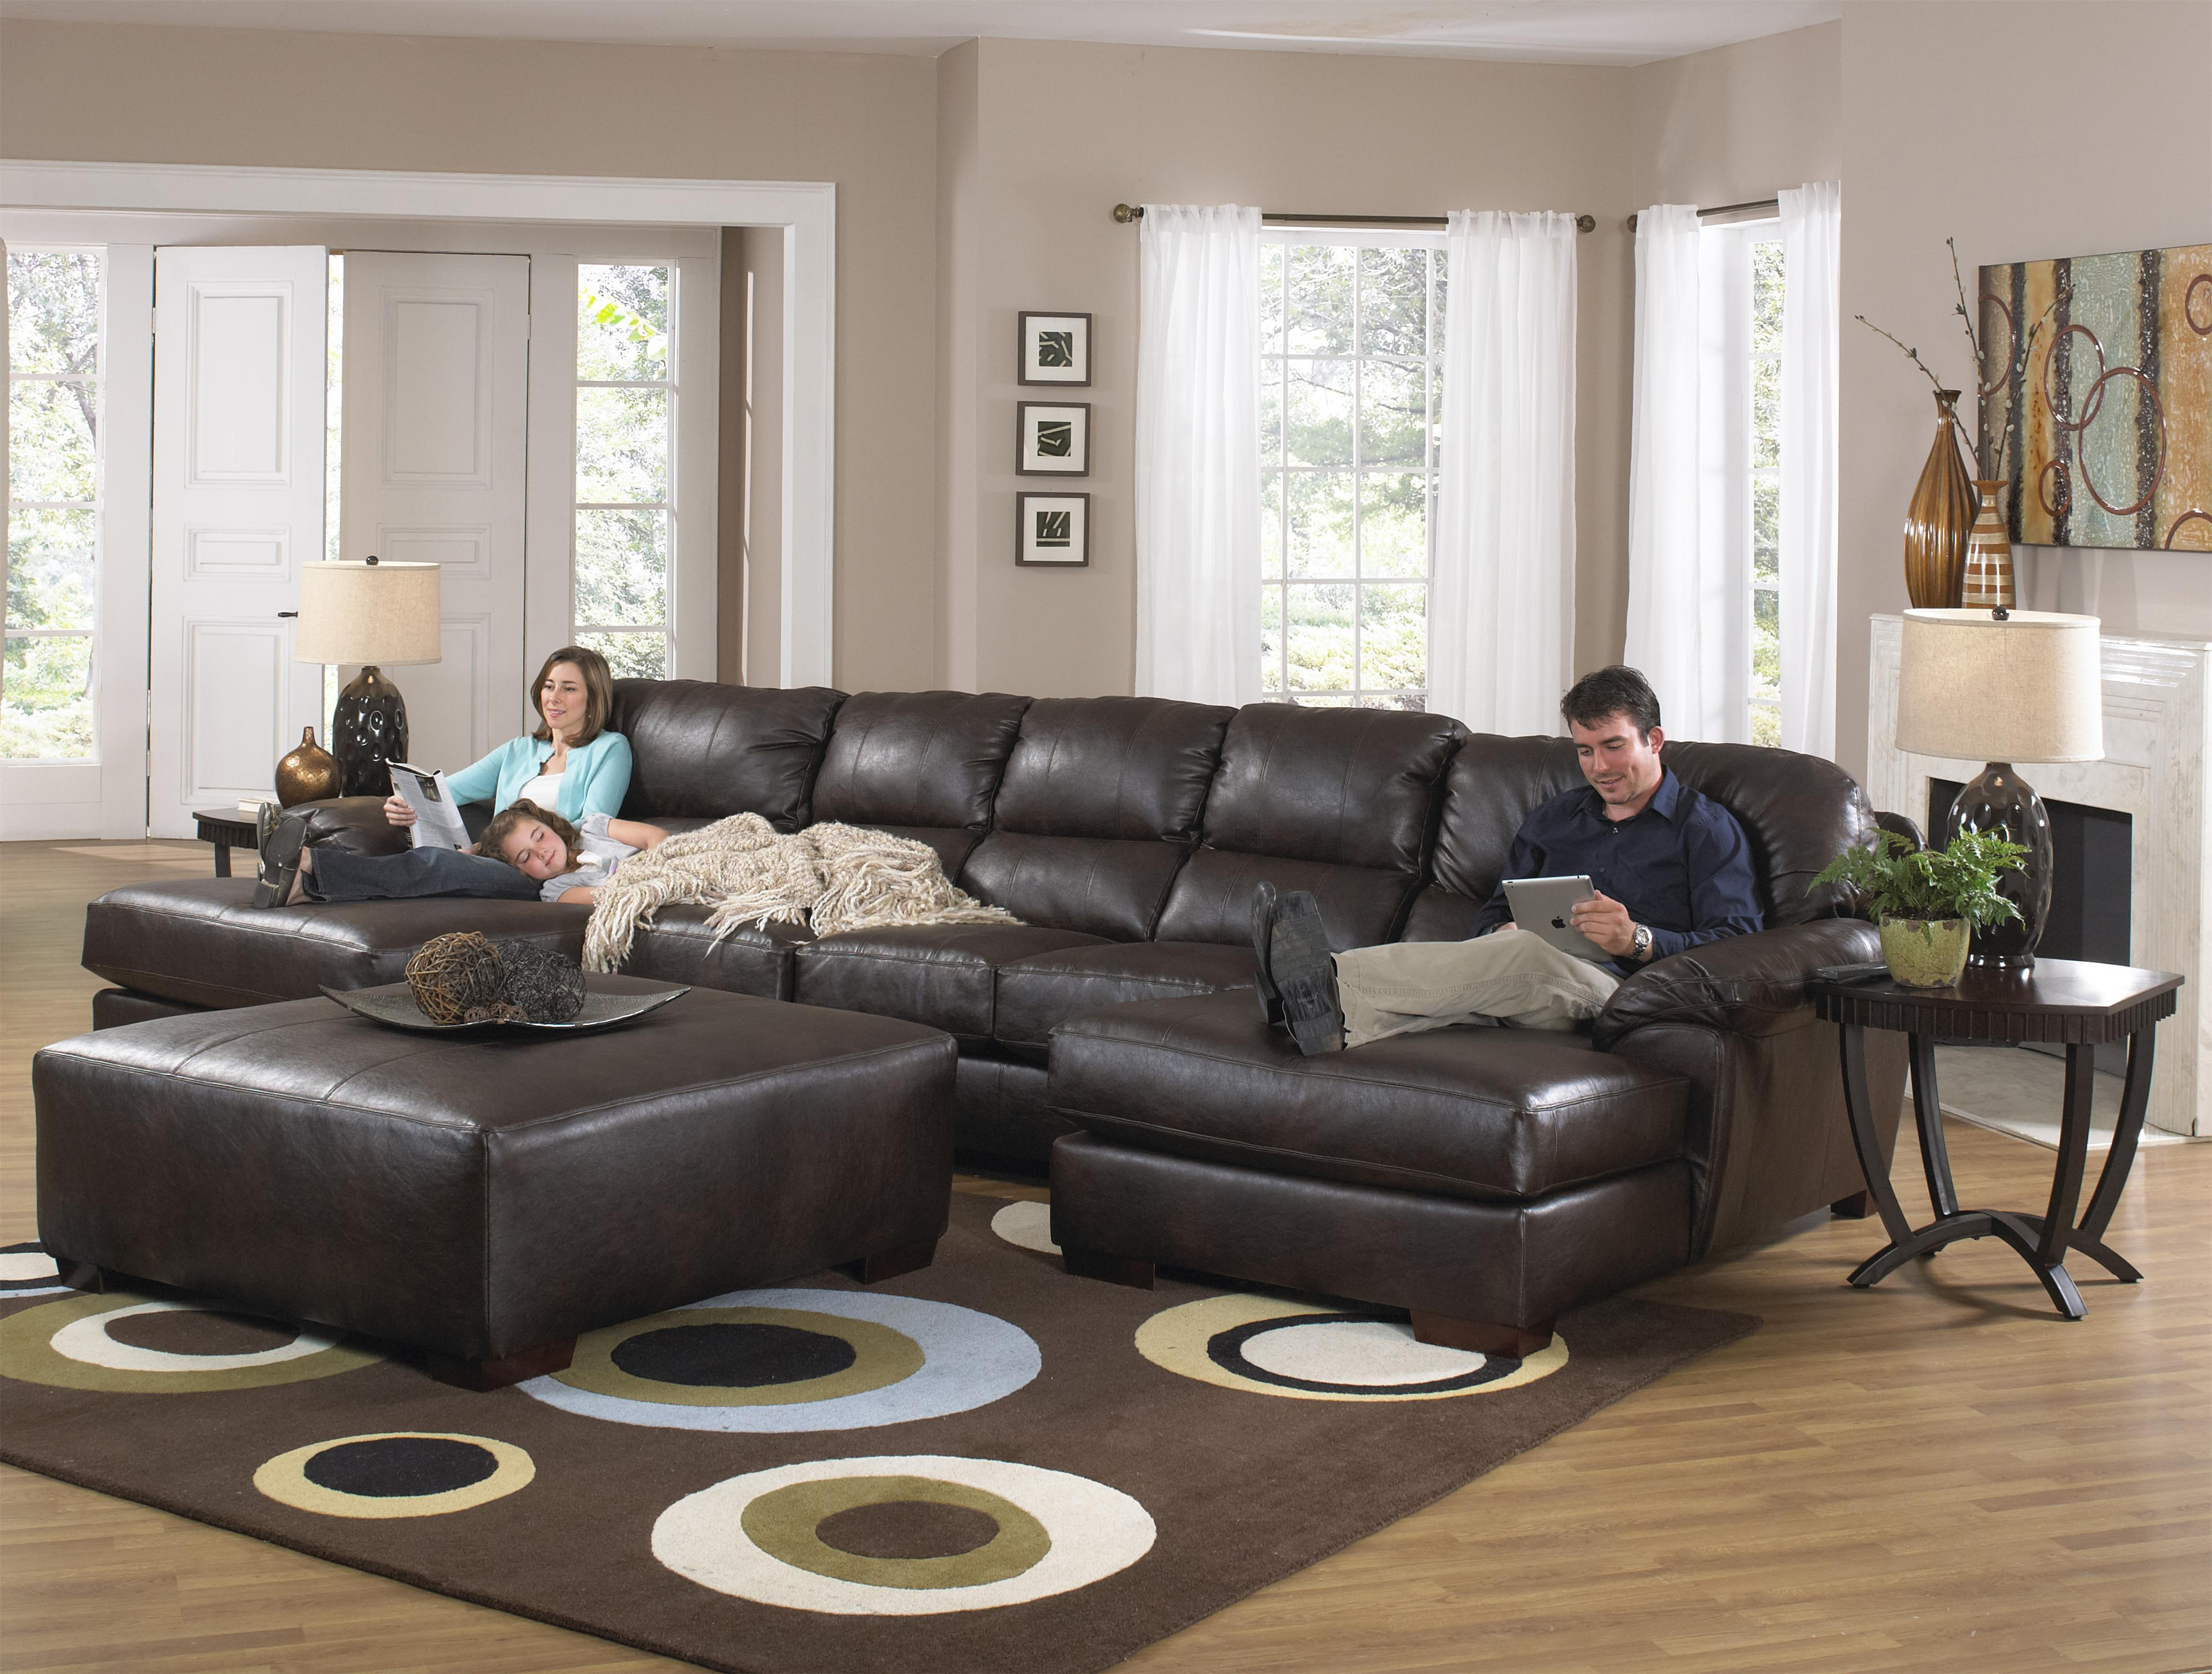 recliner couch sectional decor overview with sofas elites an recliners home of